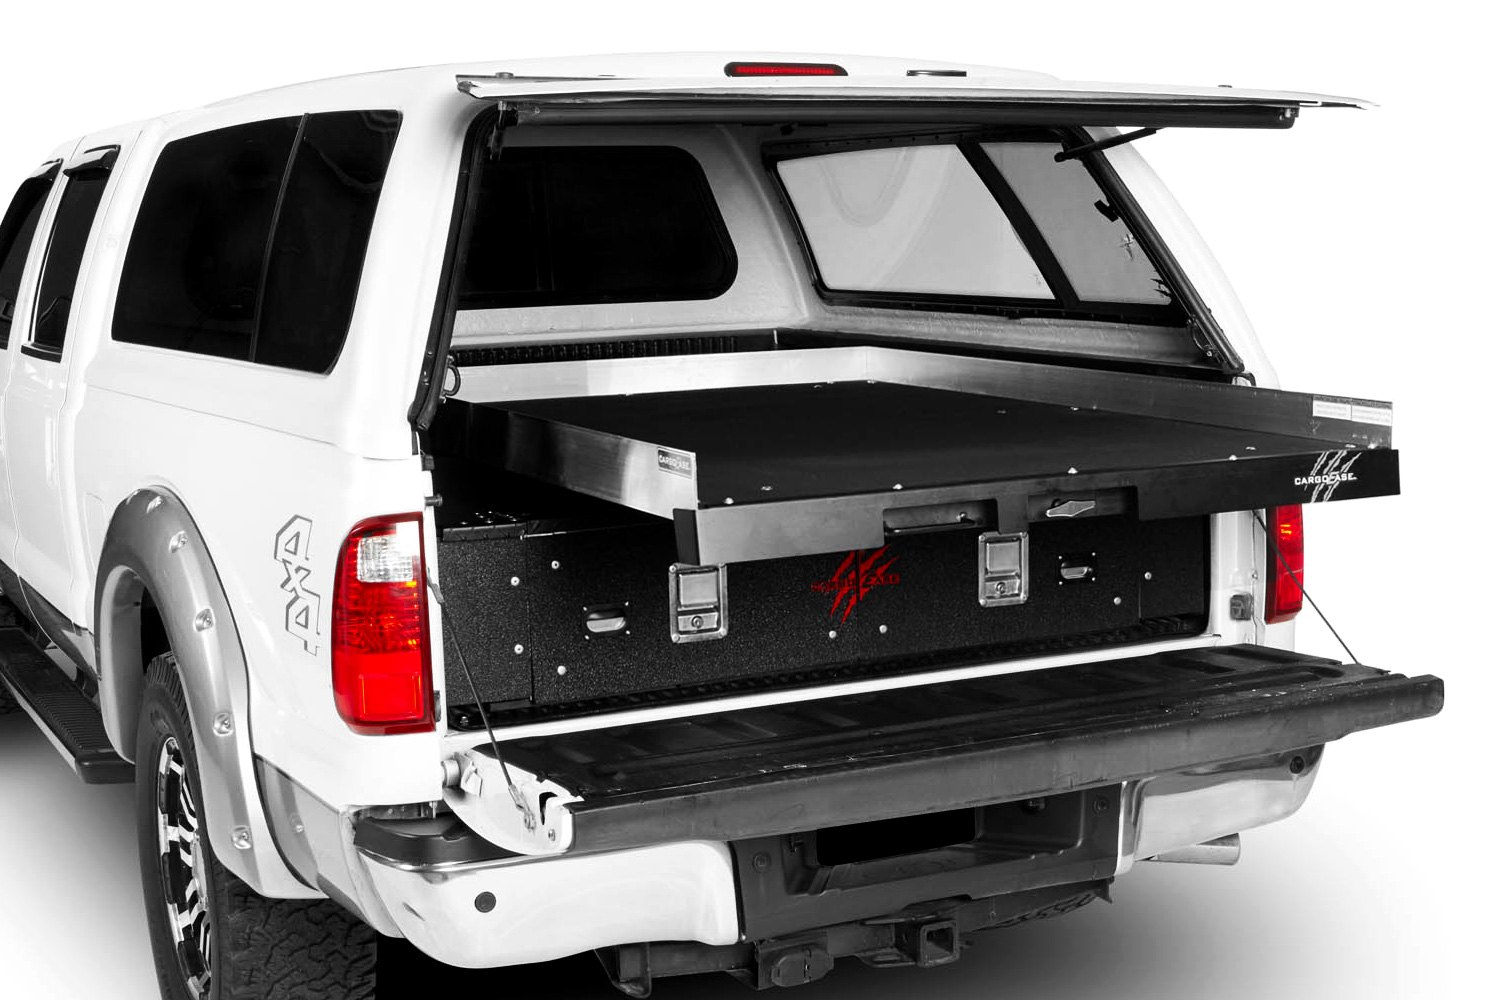 F150 Bed Accessories 28 Images Truck Bed Accessories Ford F150 Bozbuz 2015 F150 Bedrug